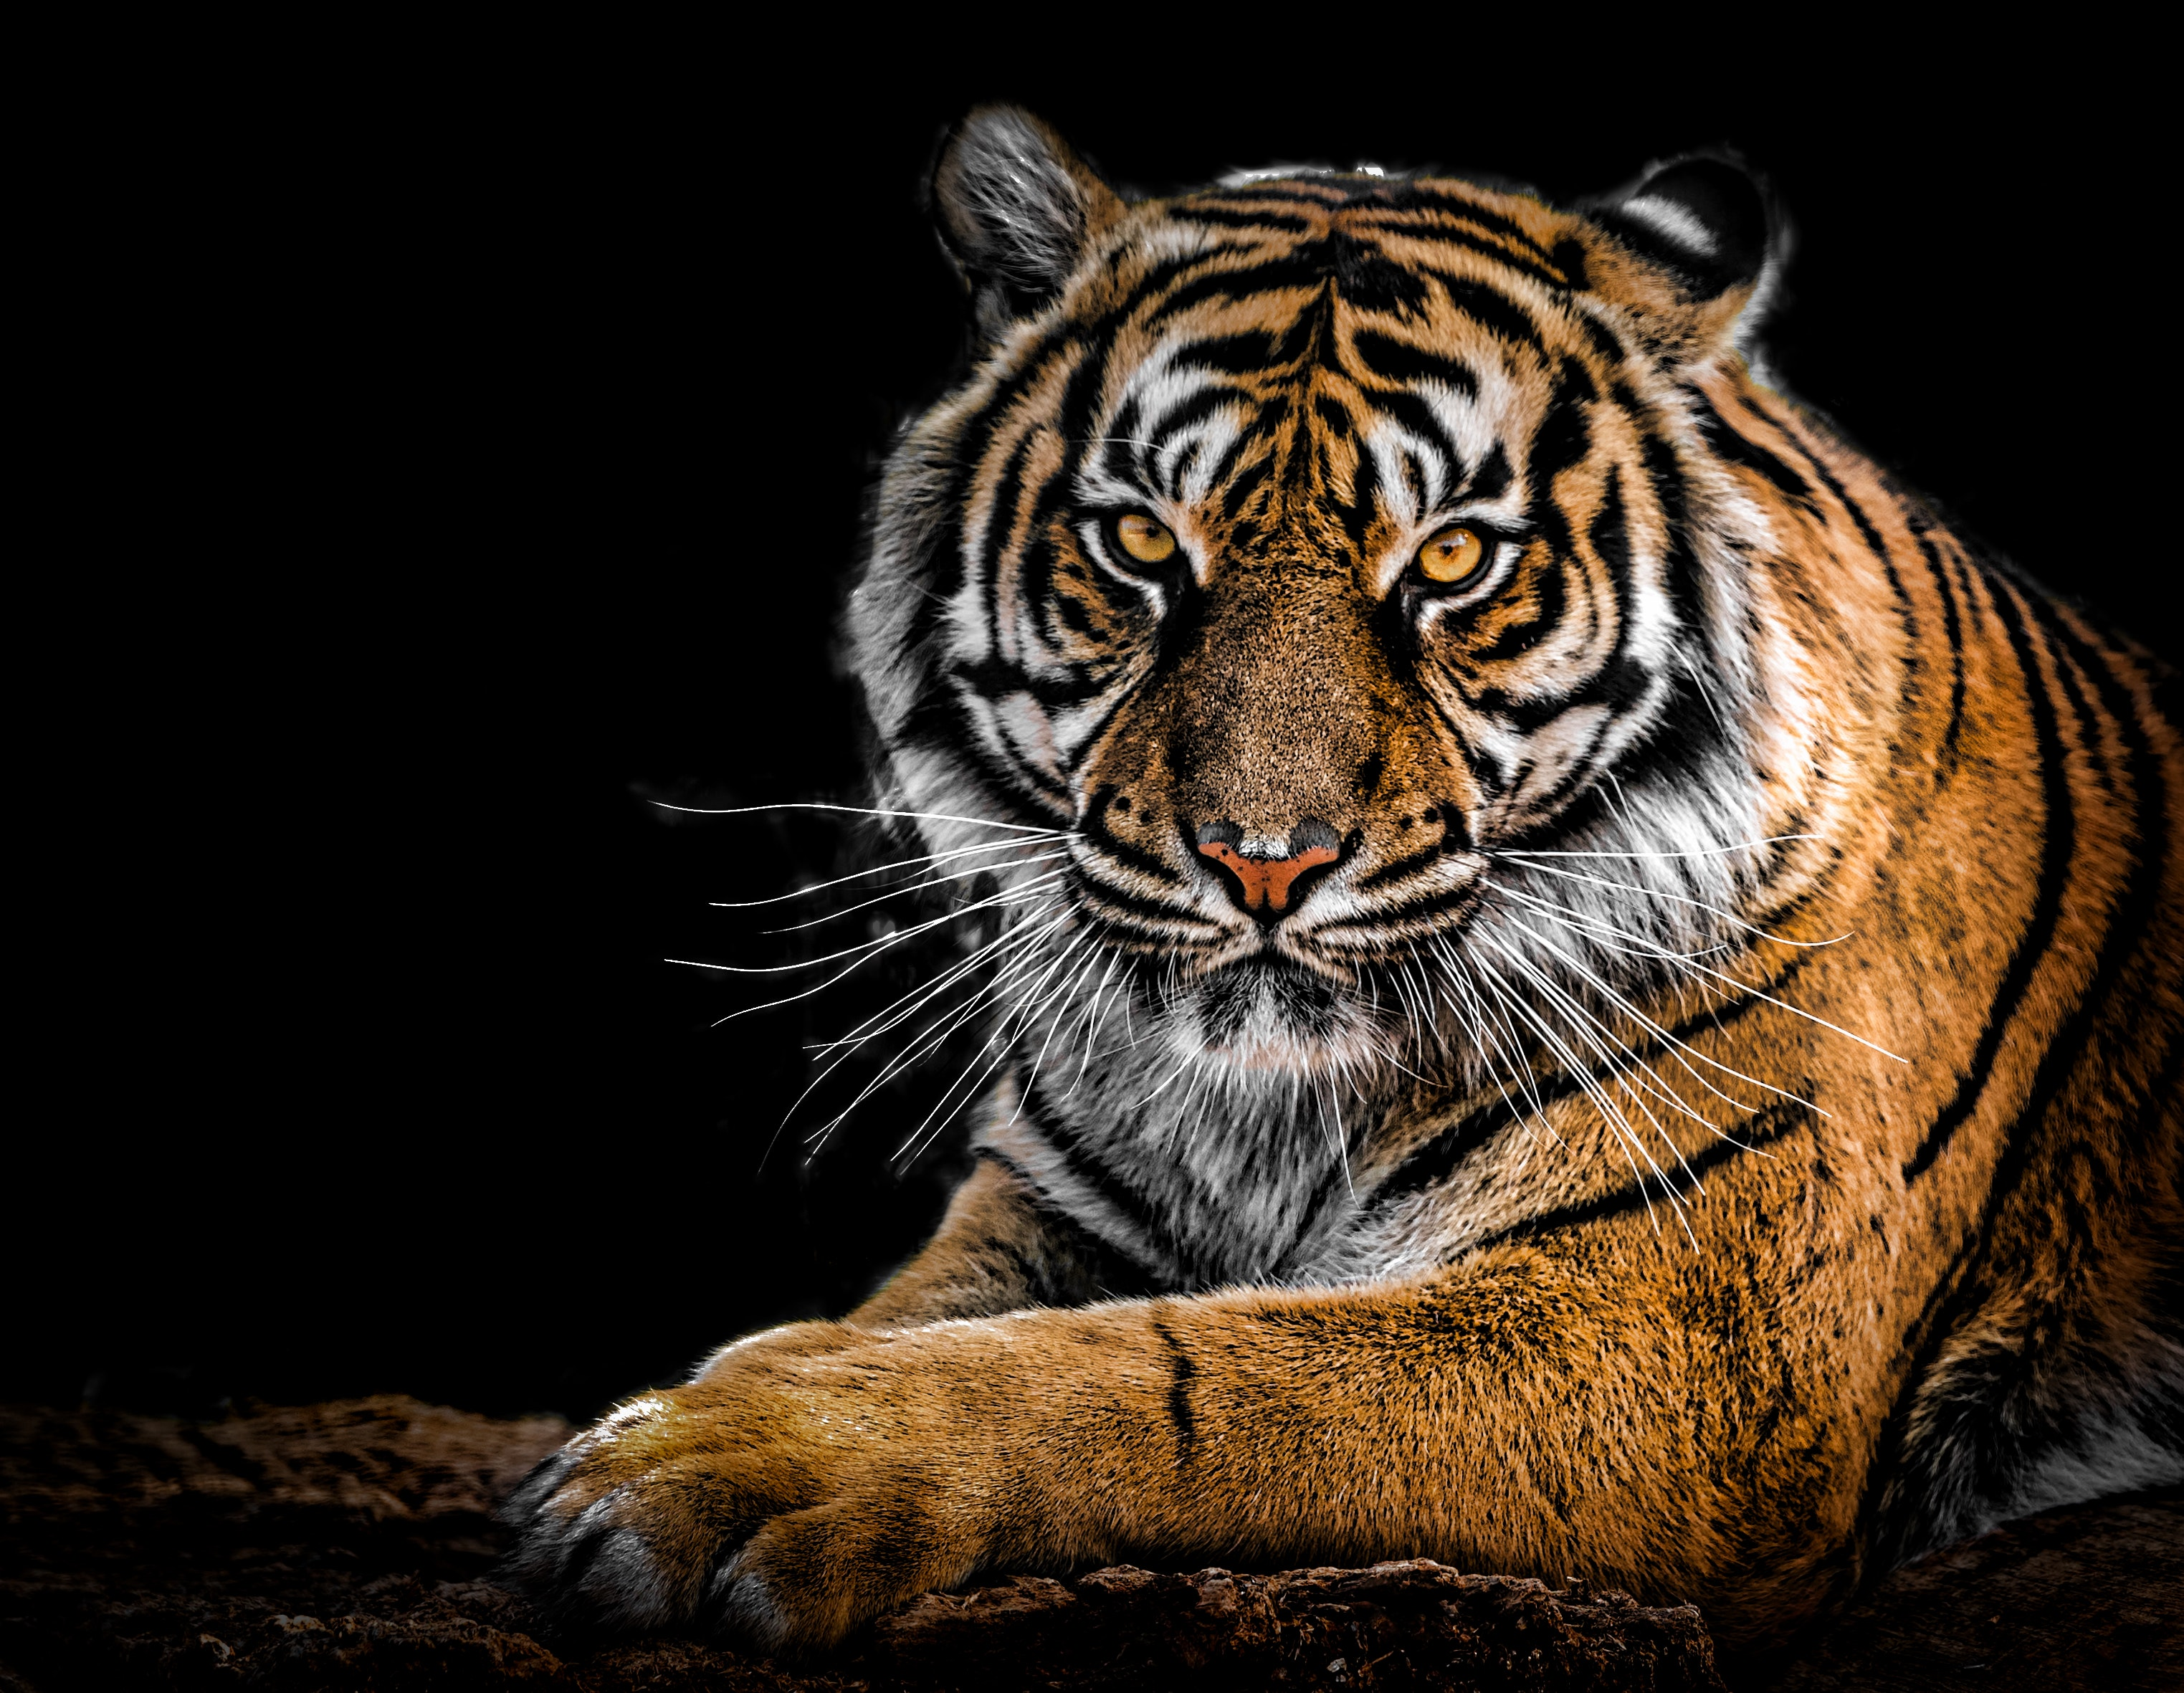 77 majestic tiger pictures · pexels · free stock photos